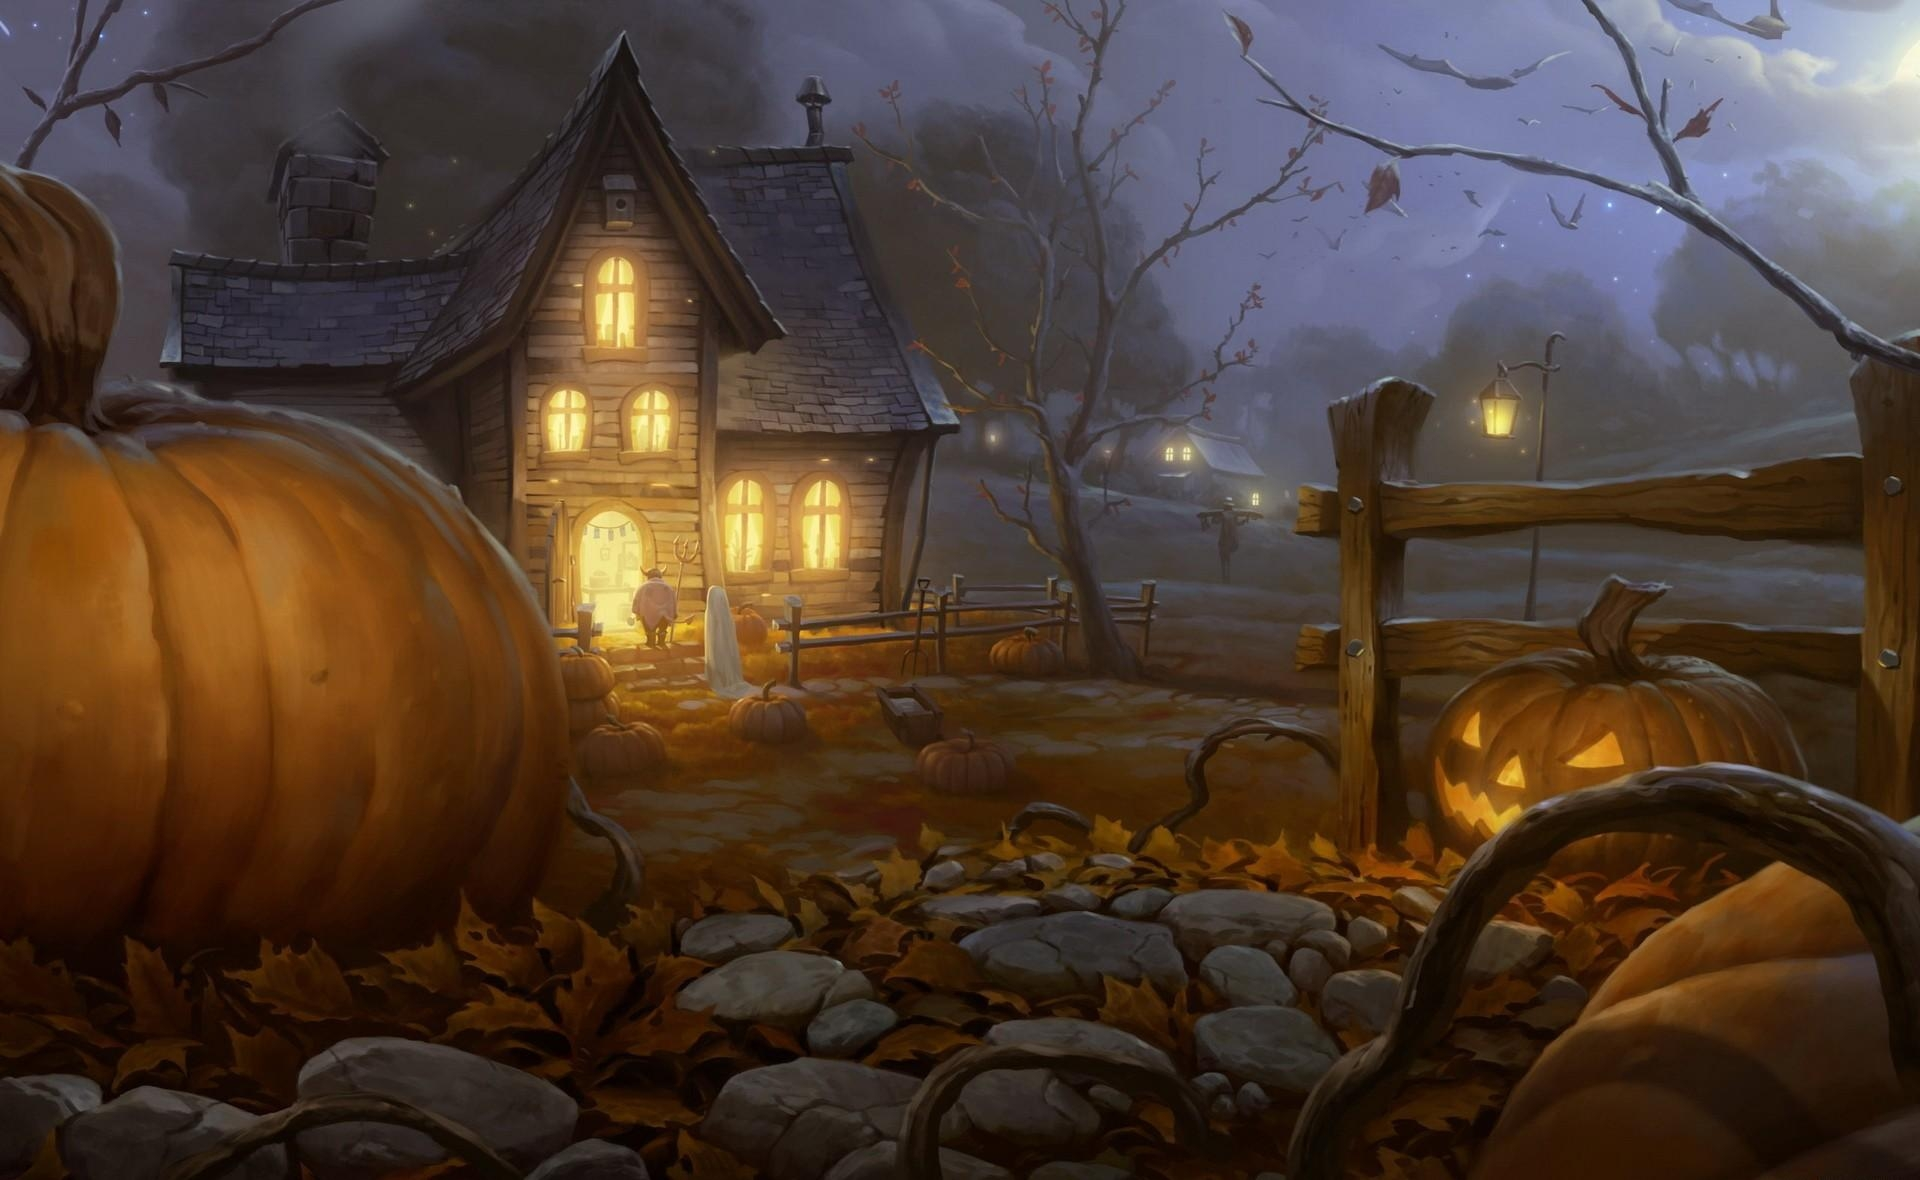 106810 download wallpaper Pumpkin, Halloween, Holidays, Night, Shine, Light, Holiday, House, Jack's Lantern screensavers and pictures for free